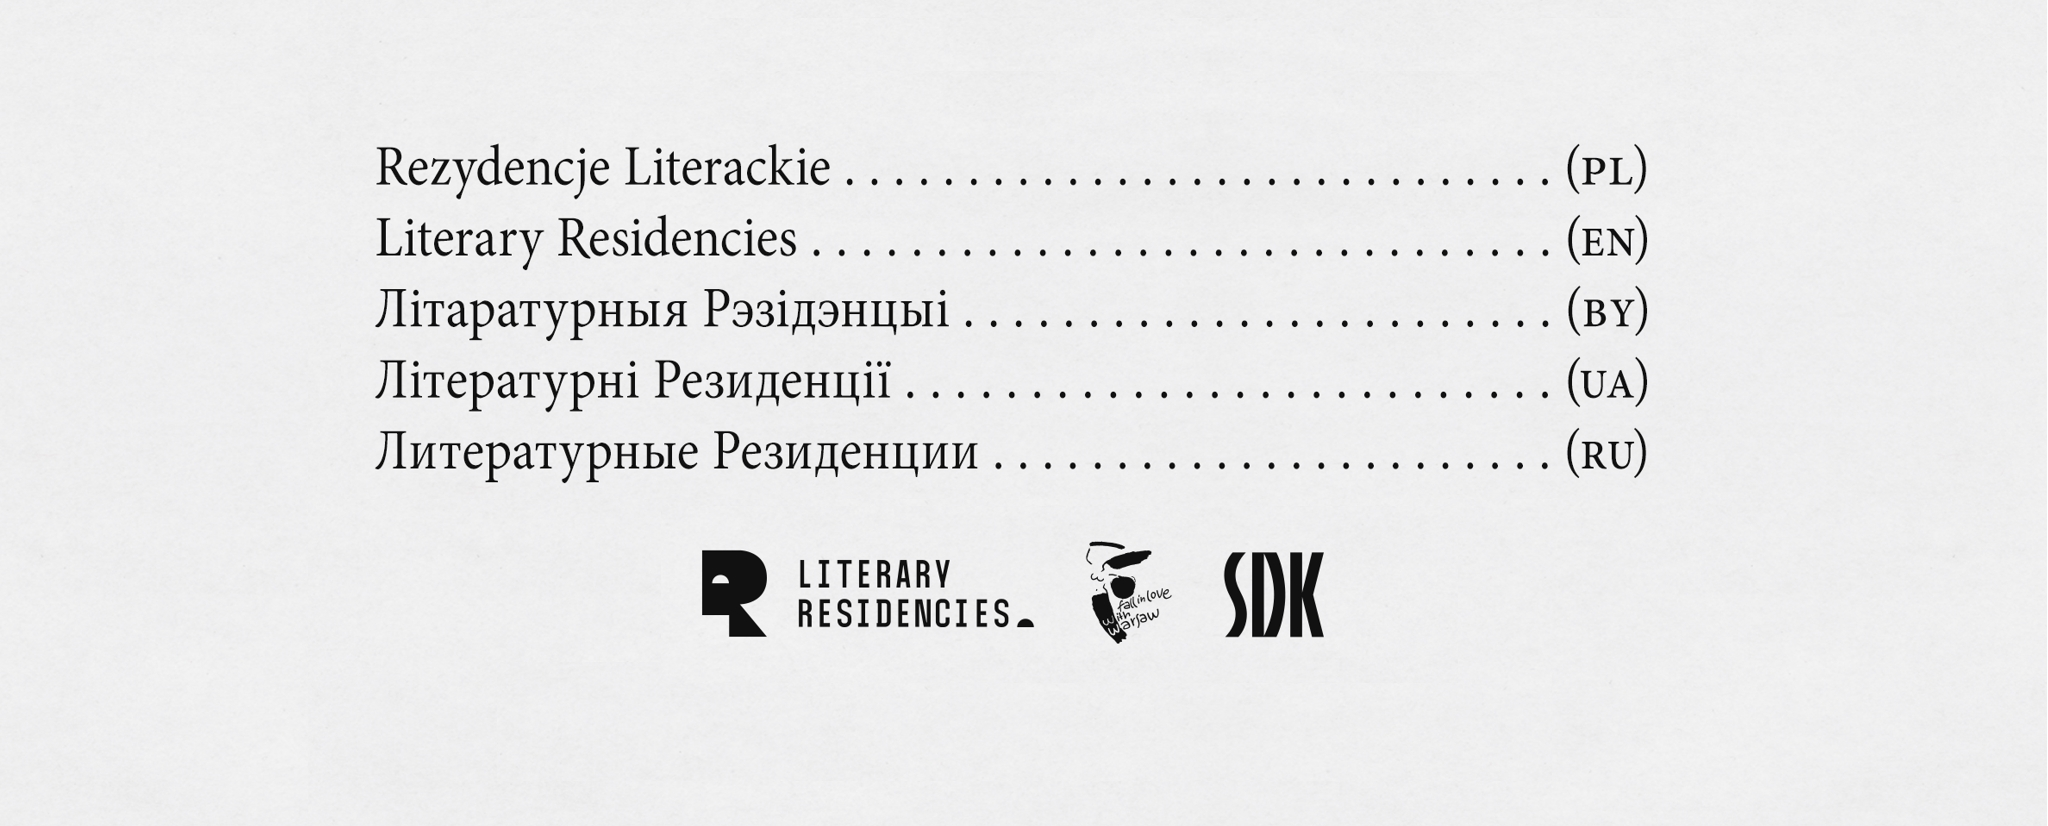 Obraz w sliderze - Literary Residencies in Warsaw for writers and translators from Belarus, Ukraine and Russia